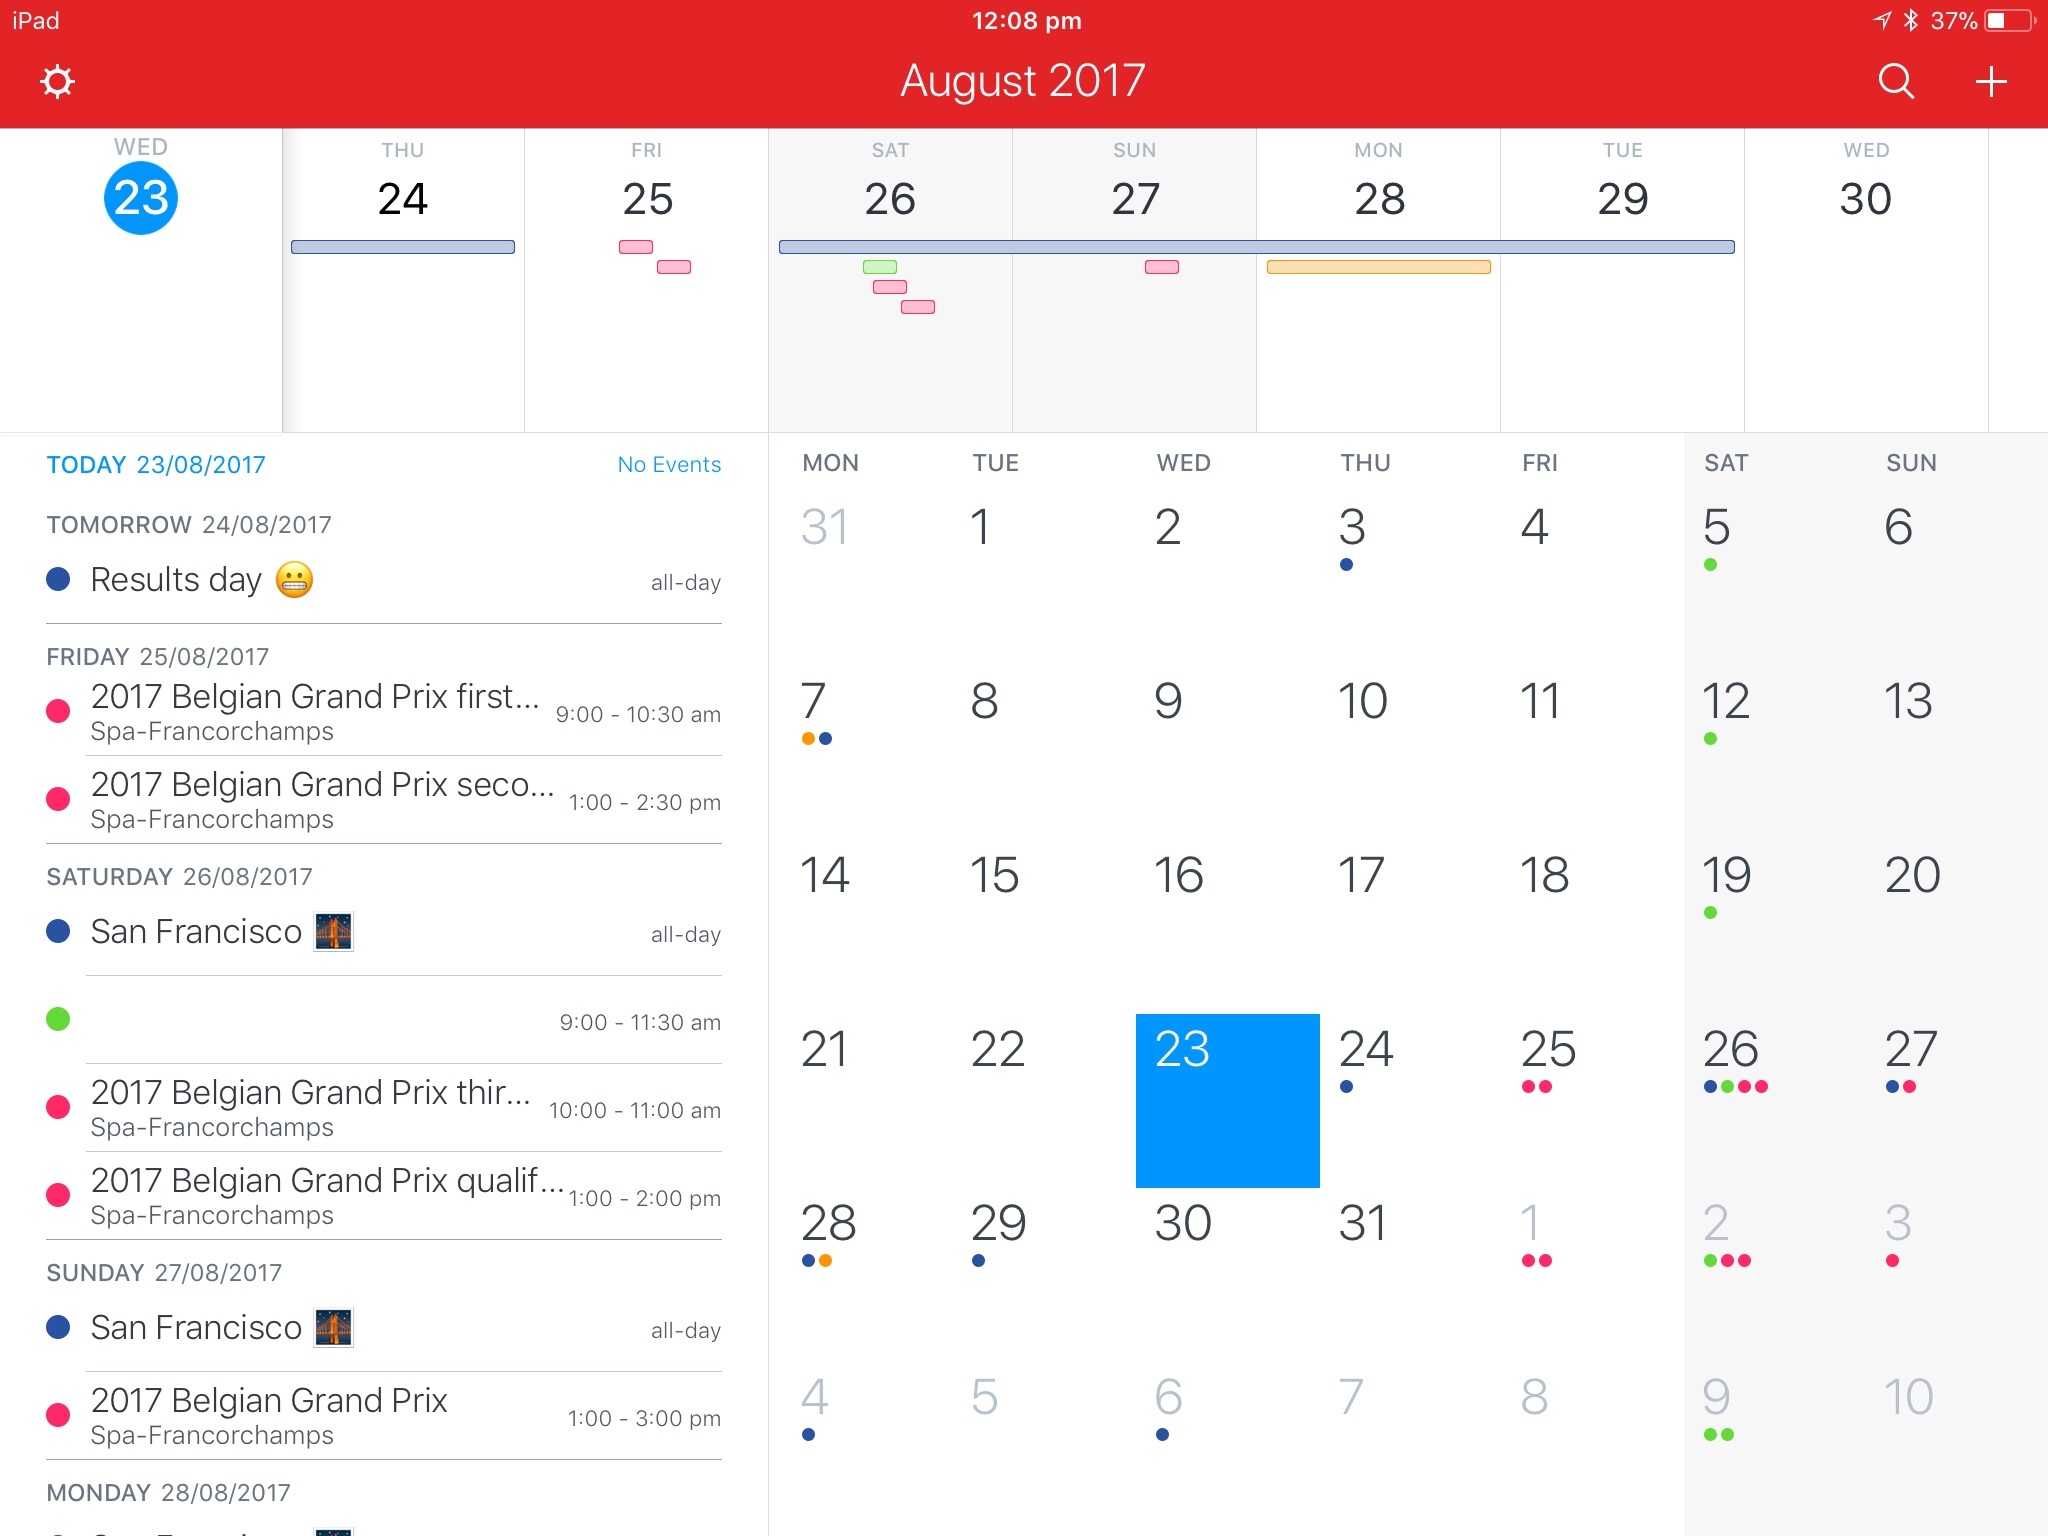 My calendars in Fantastical